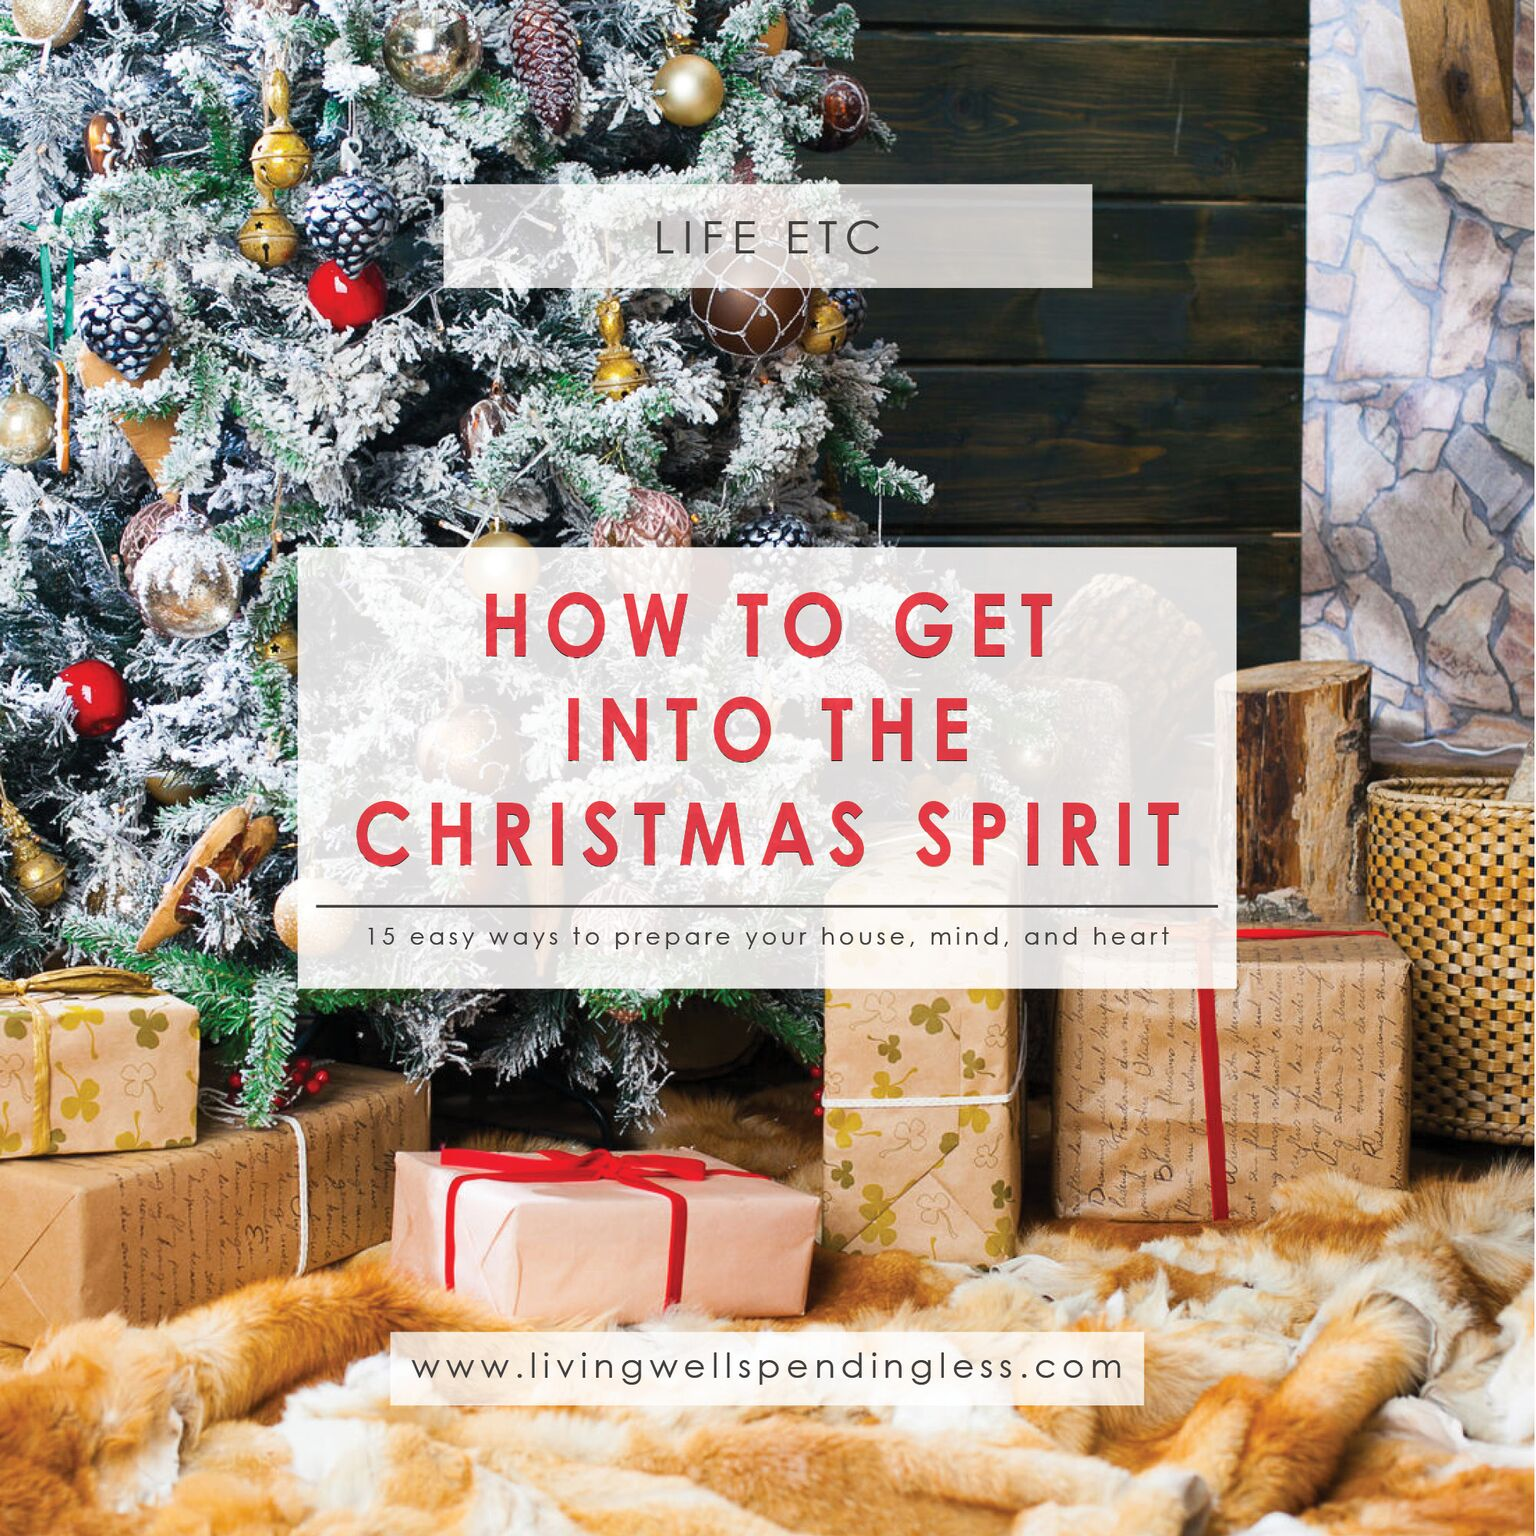 Get Your Home In The Holiday Spirit With Our Christmas Decoration Ideas: How To Get Into The Christmas Spirit⎢Preparing For The